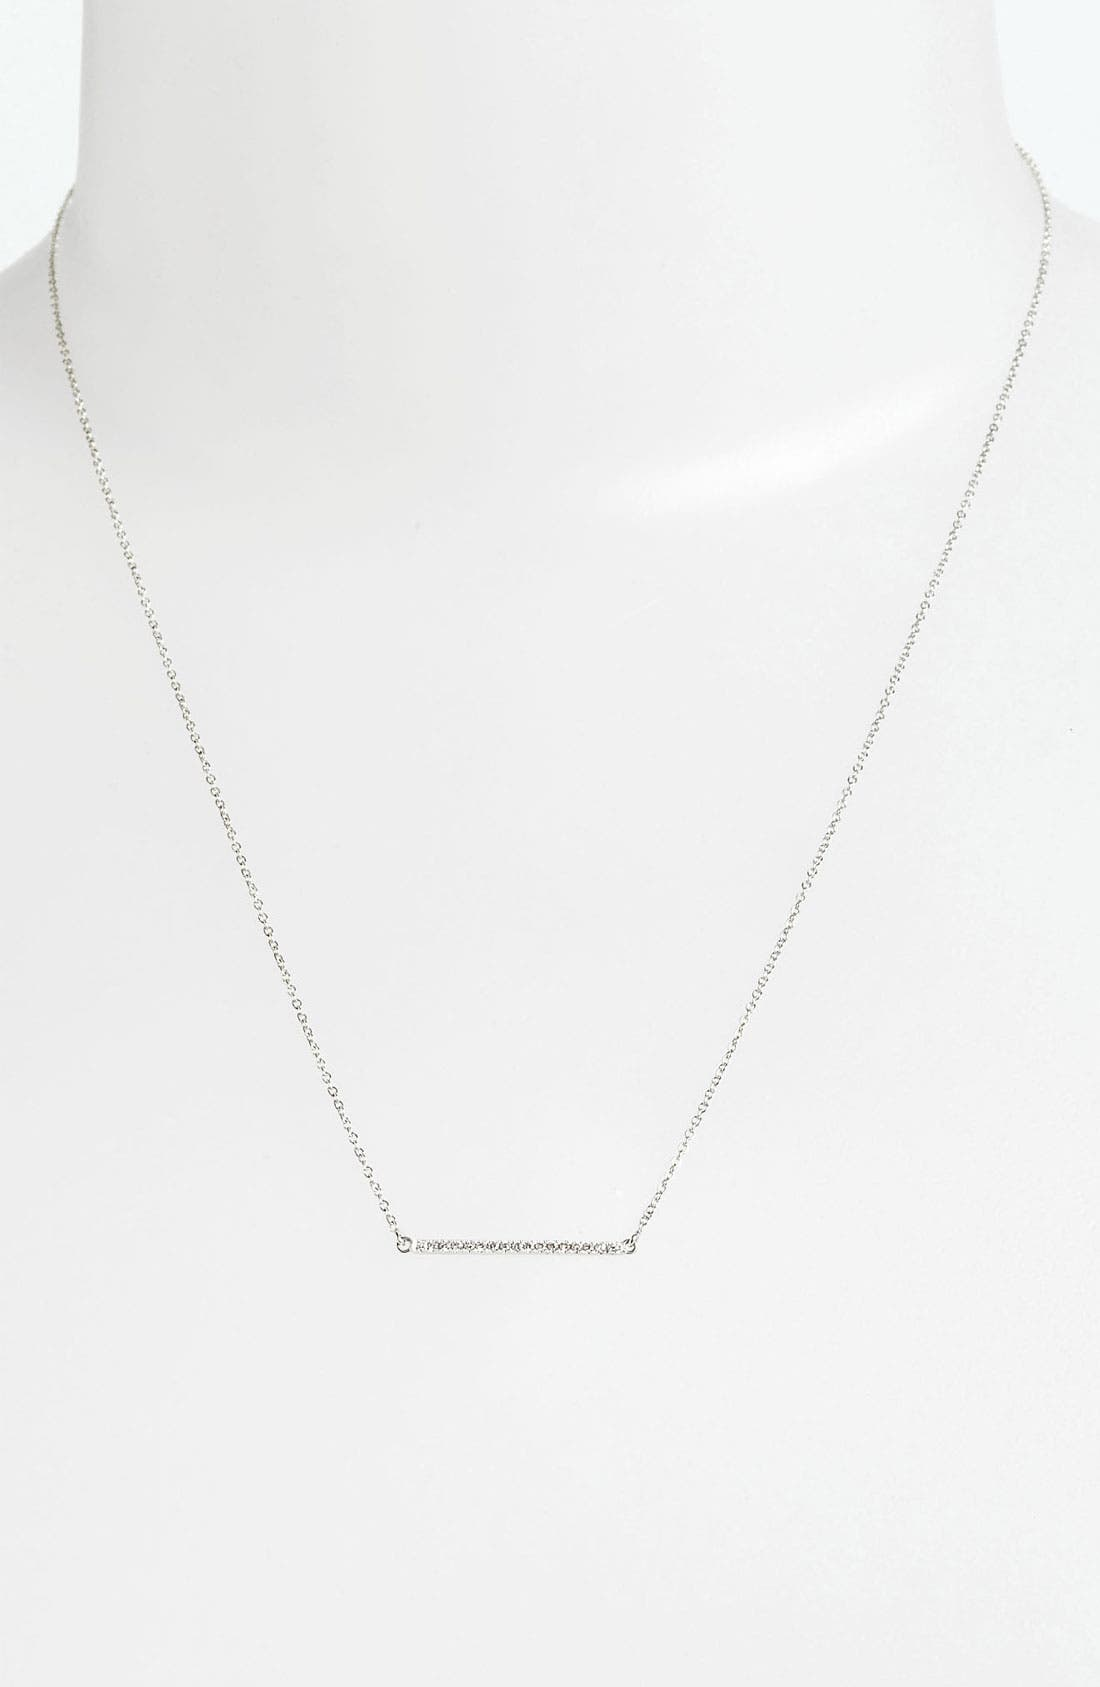 Alternate Image 1 Selected - Bony Levy Diamond Bar Necklace (Nordstrom Exclusive)